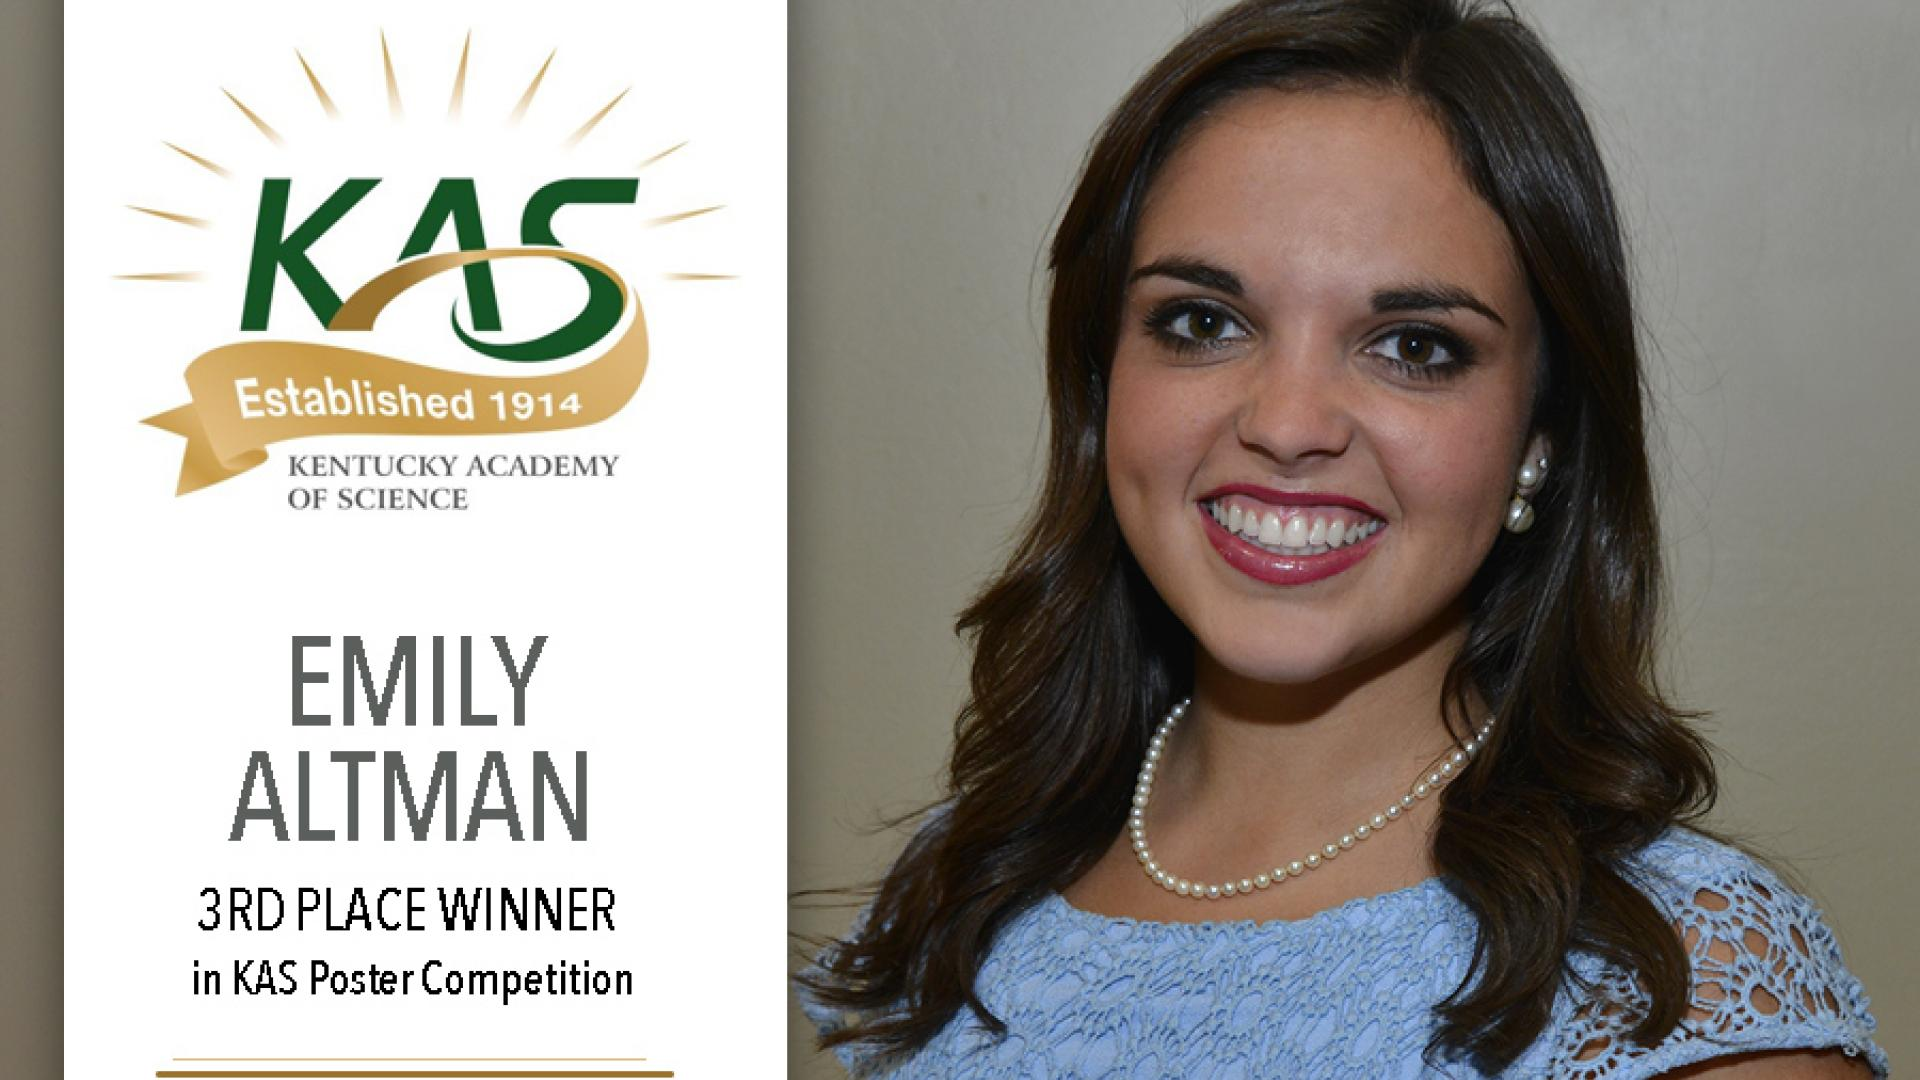 Emily Altman wins 3rd place in KAS poster competition